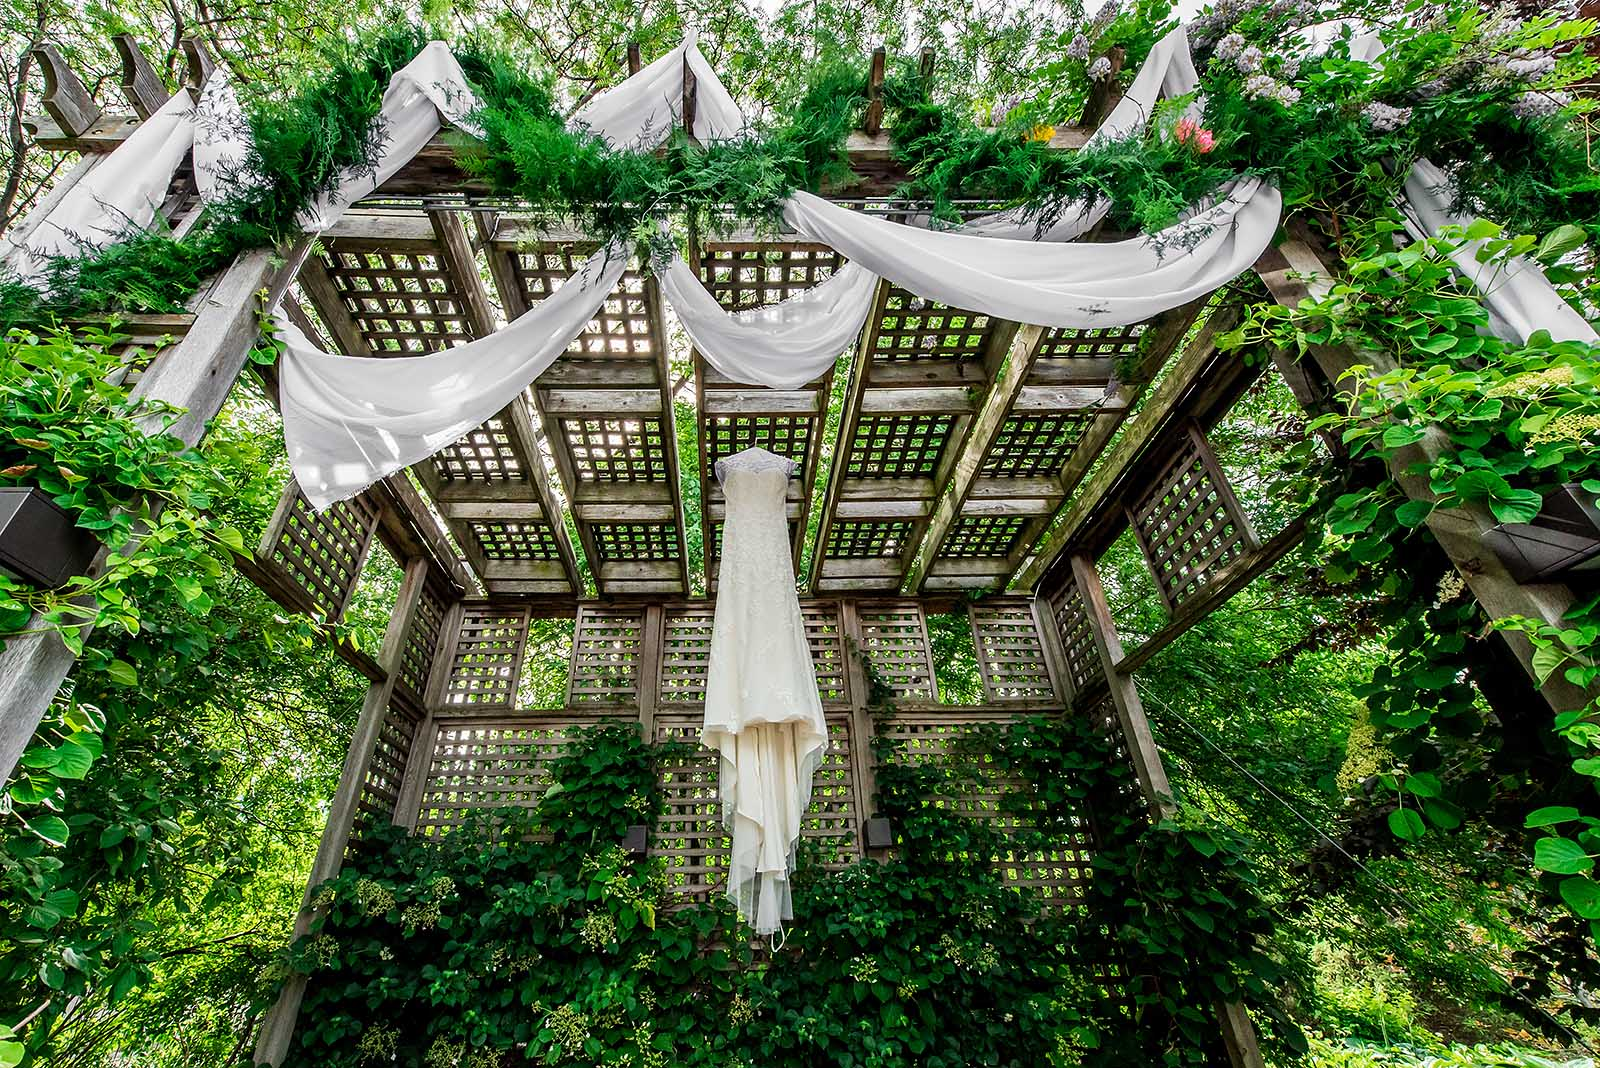 Wedding Dress hanging outdoors in garden pergola